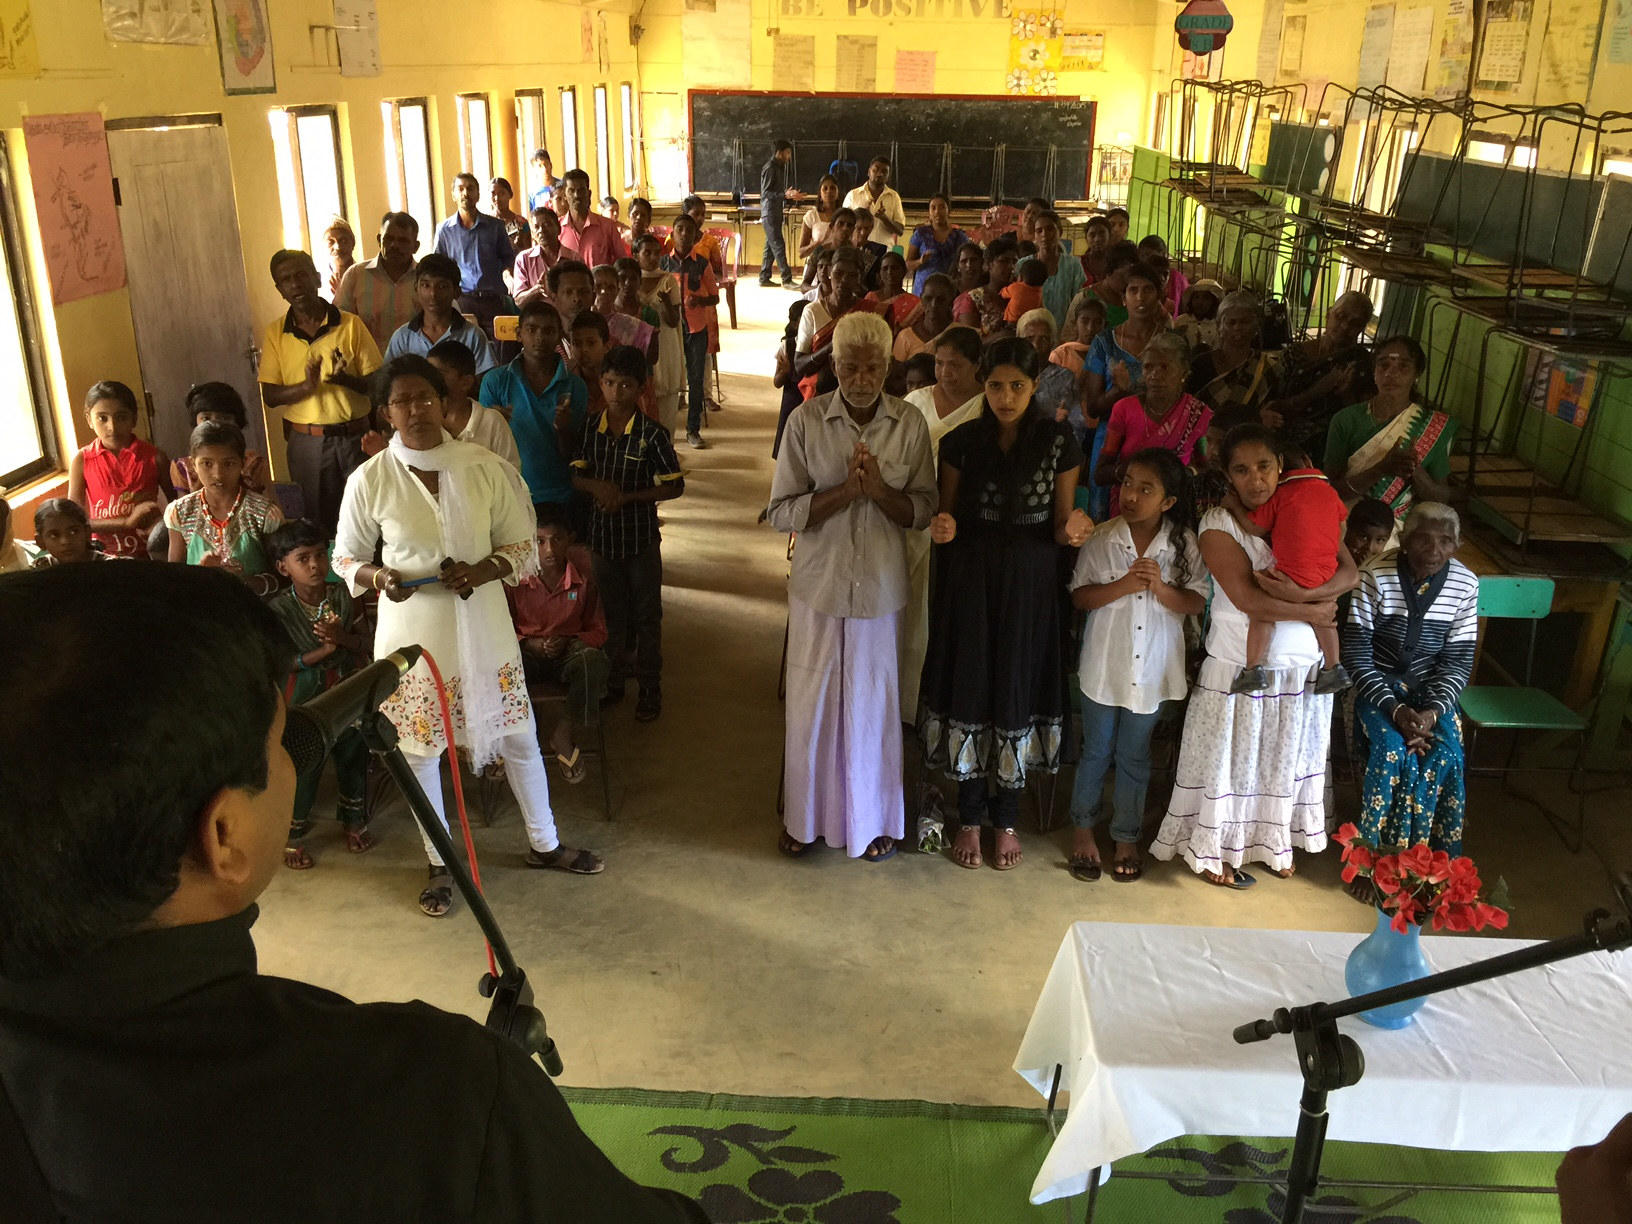 As a result of the crusade this church was planted! This is the very first church in this area.